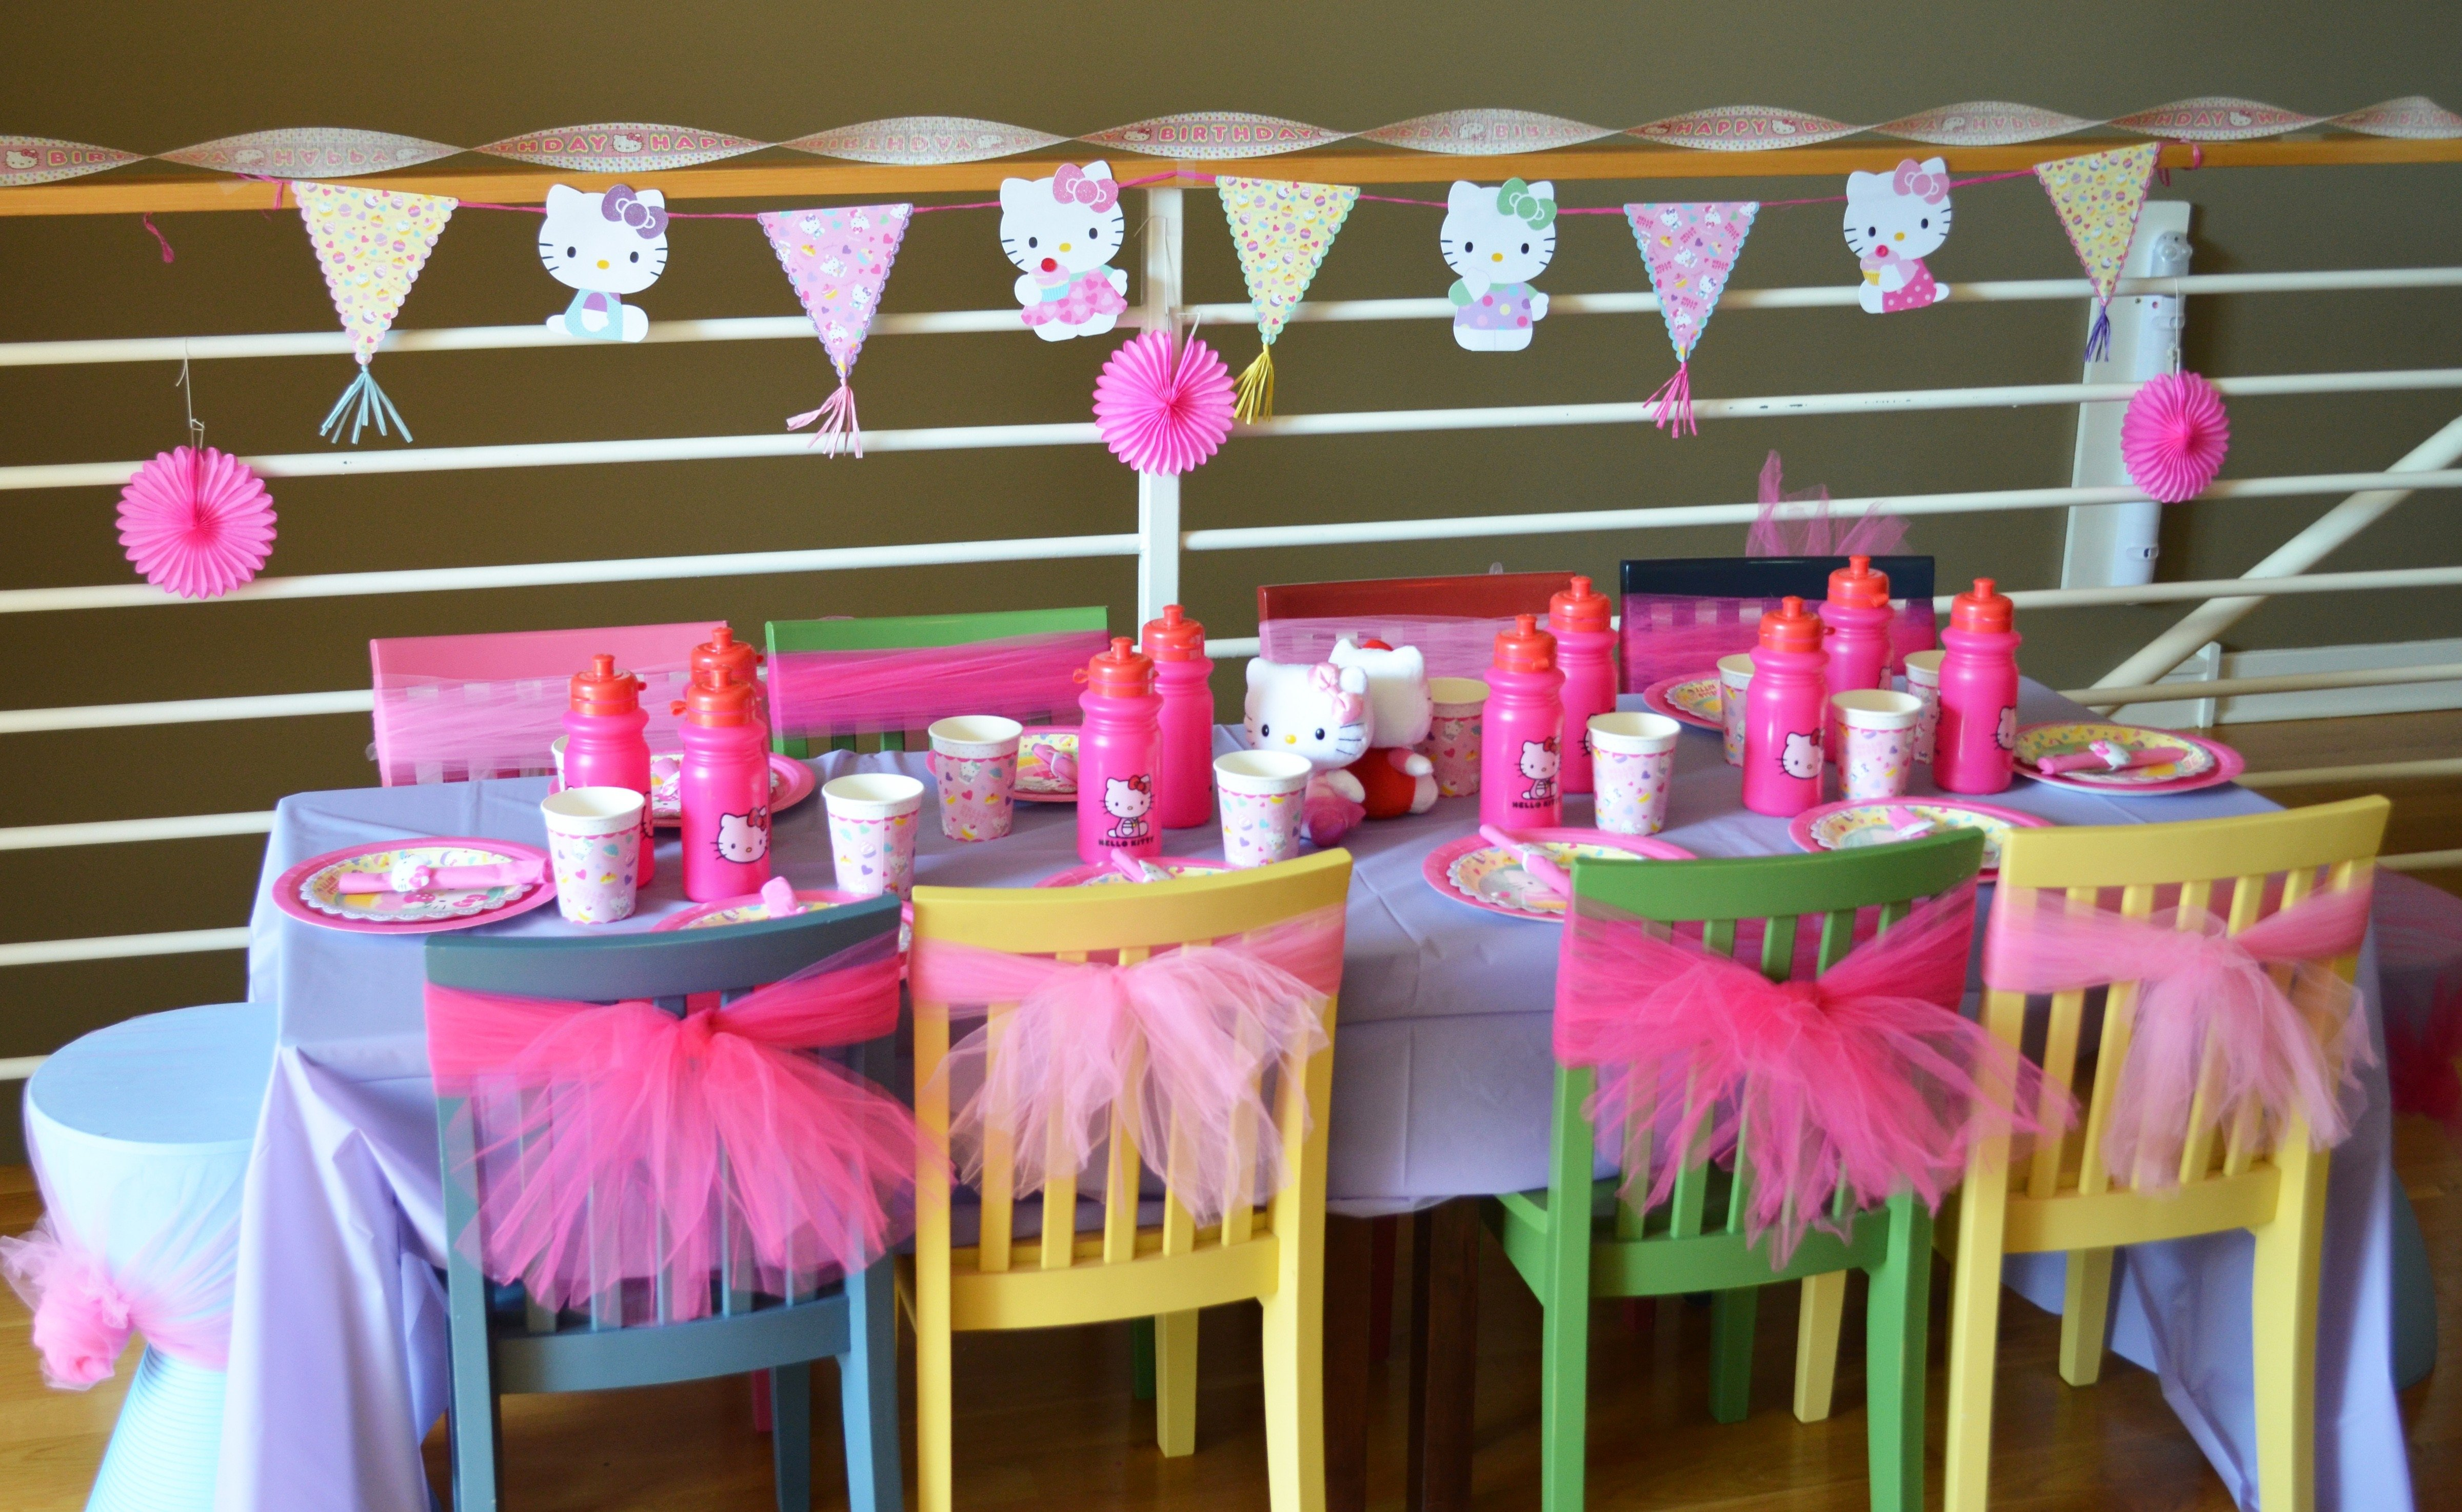 10 Cute 3 Year Old Birthday Party Ideas 27 cute models regarding 3 year old birthday party that you shouldn 8